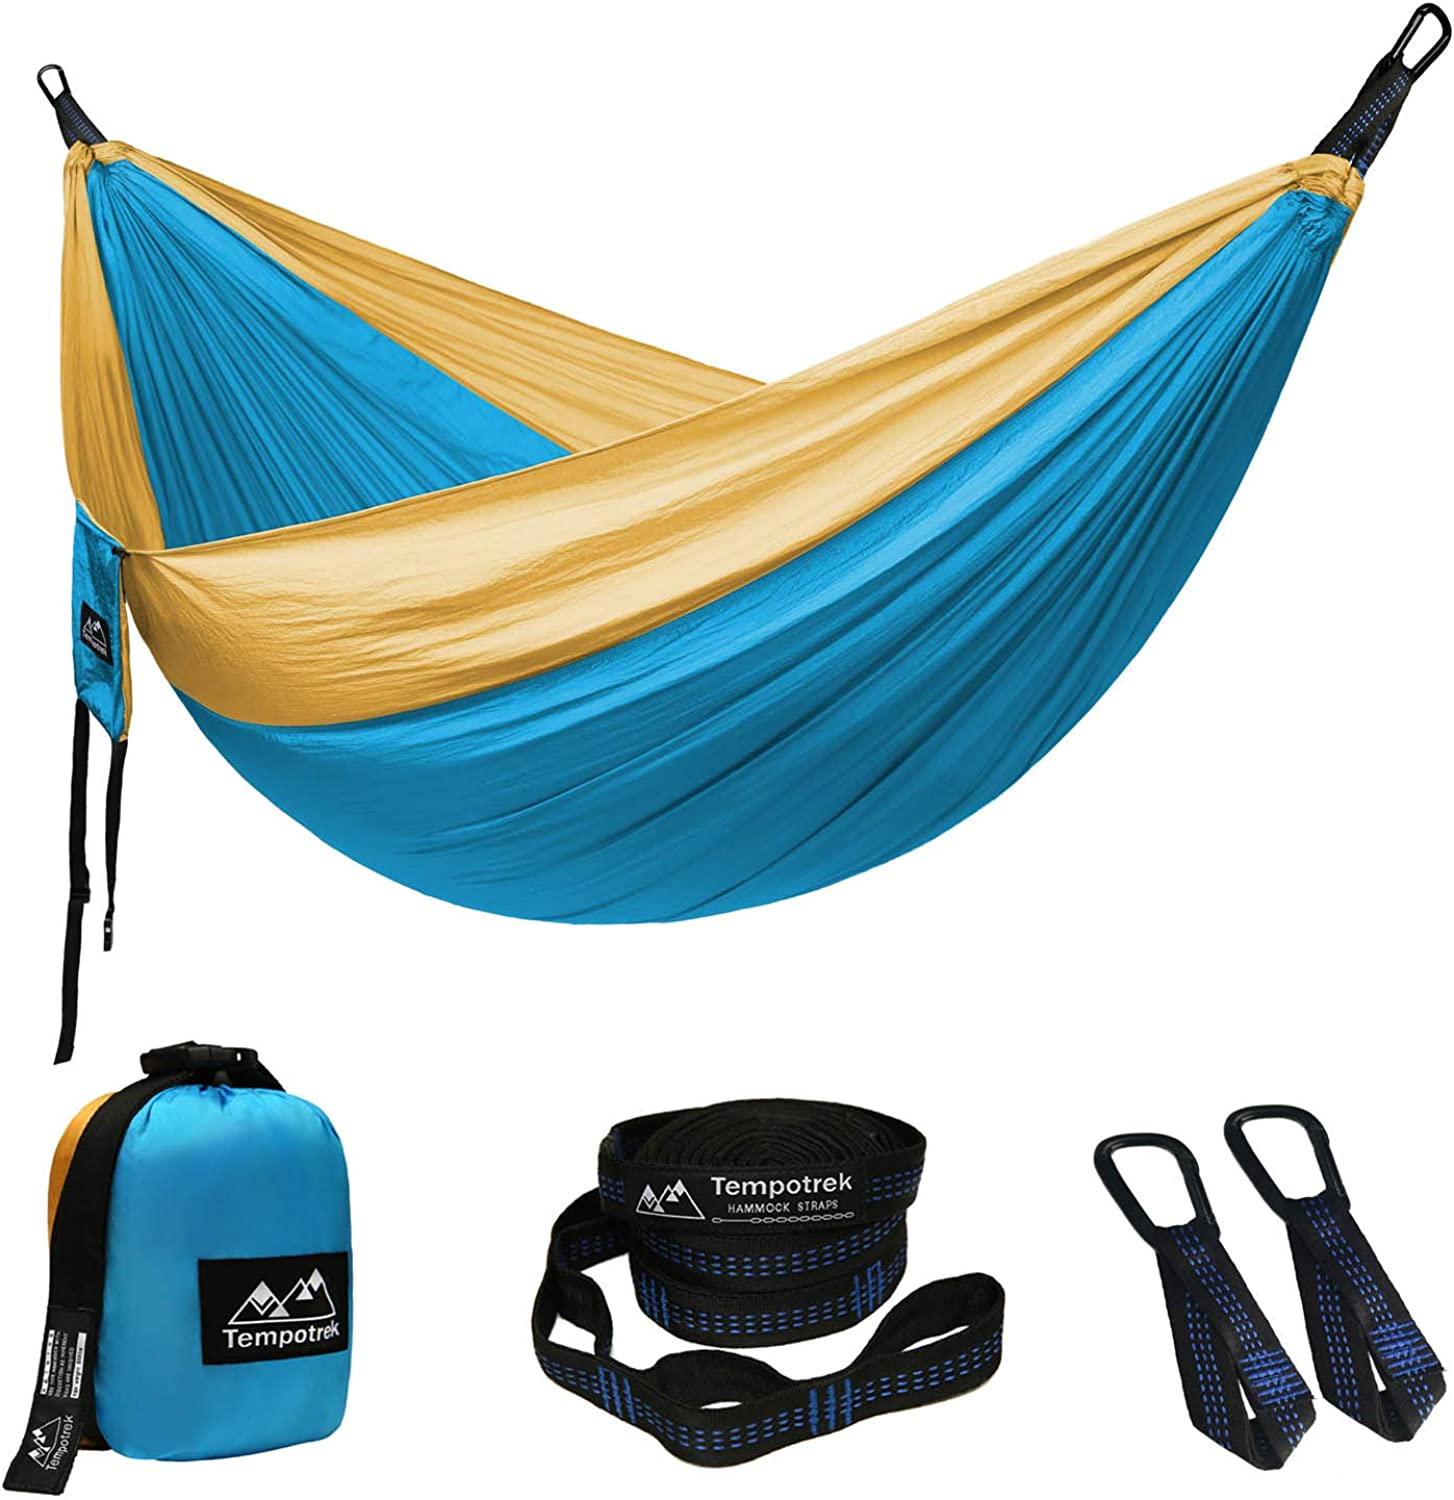 Tempotrek Camping Double Hammock Best Parachute Hammock  800LB High Capacity, Lightweight Nylon Portable Hammock for Backpacking, Travel, Beach, Yard. 118 (L) x 78 (W)